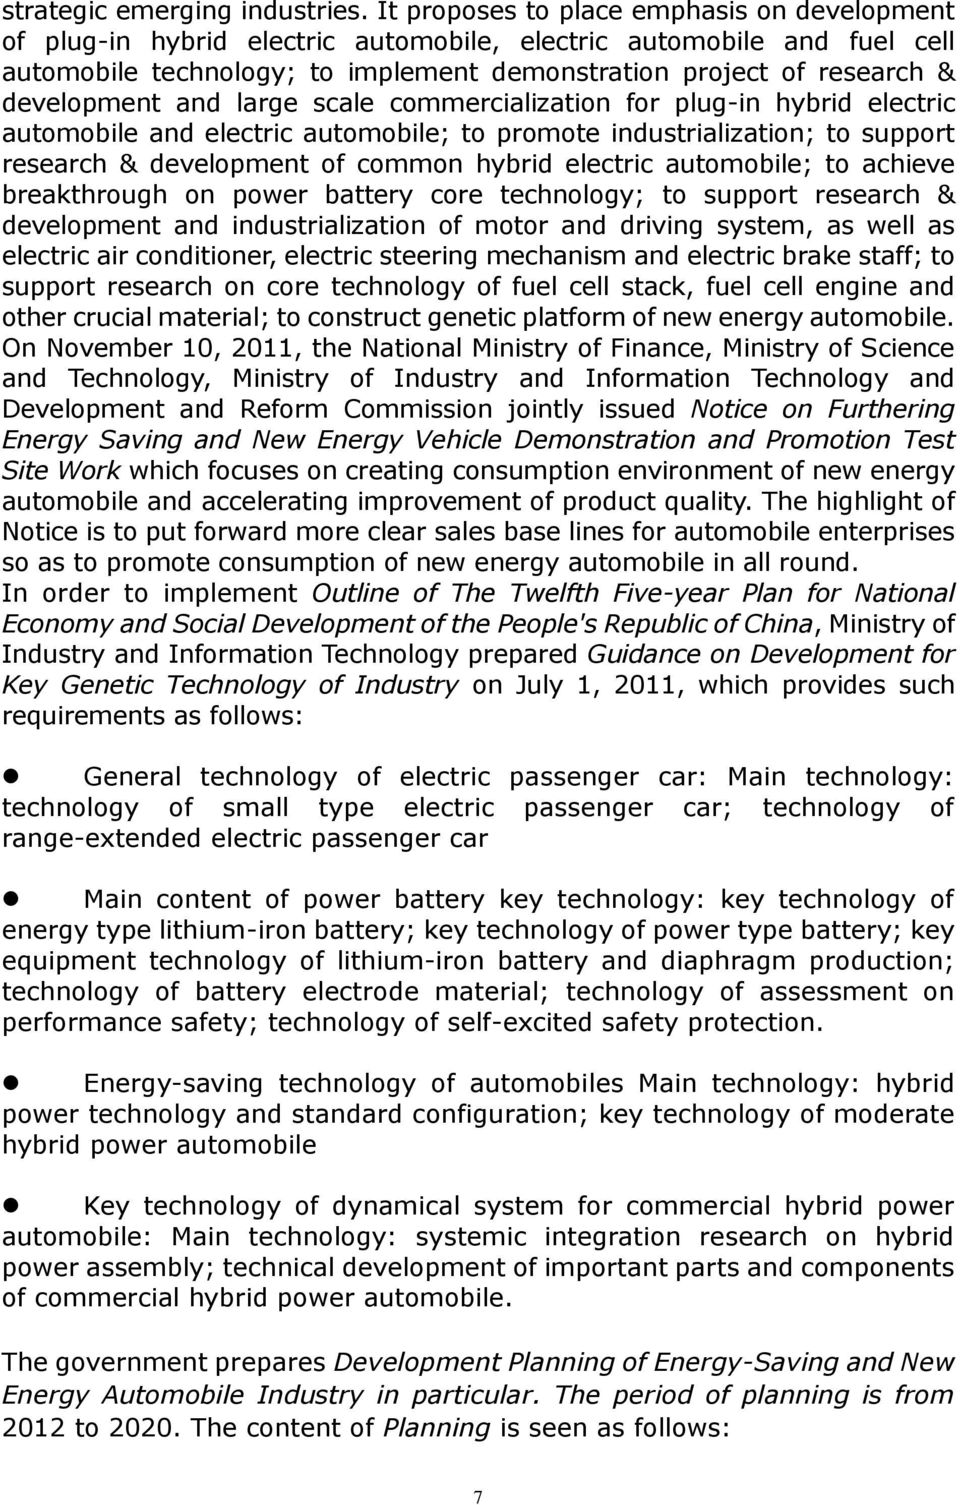 commercialization for plug-in hybrid electric and electric ; to promote industrialization; to support research & development of common hybrid electric ; to achieve breakthrough on power battery core